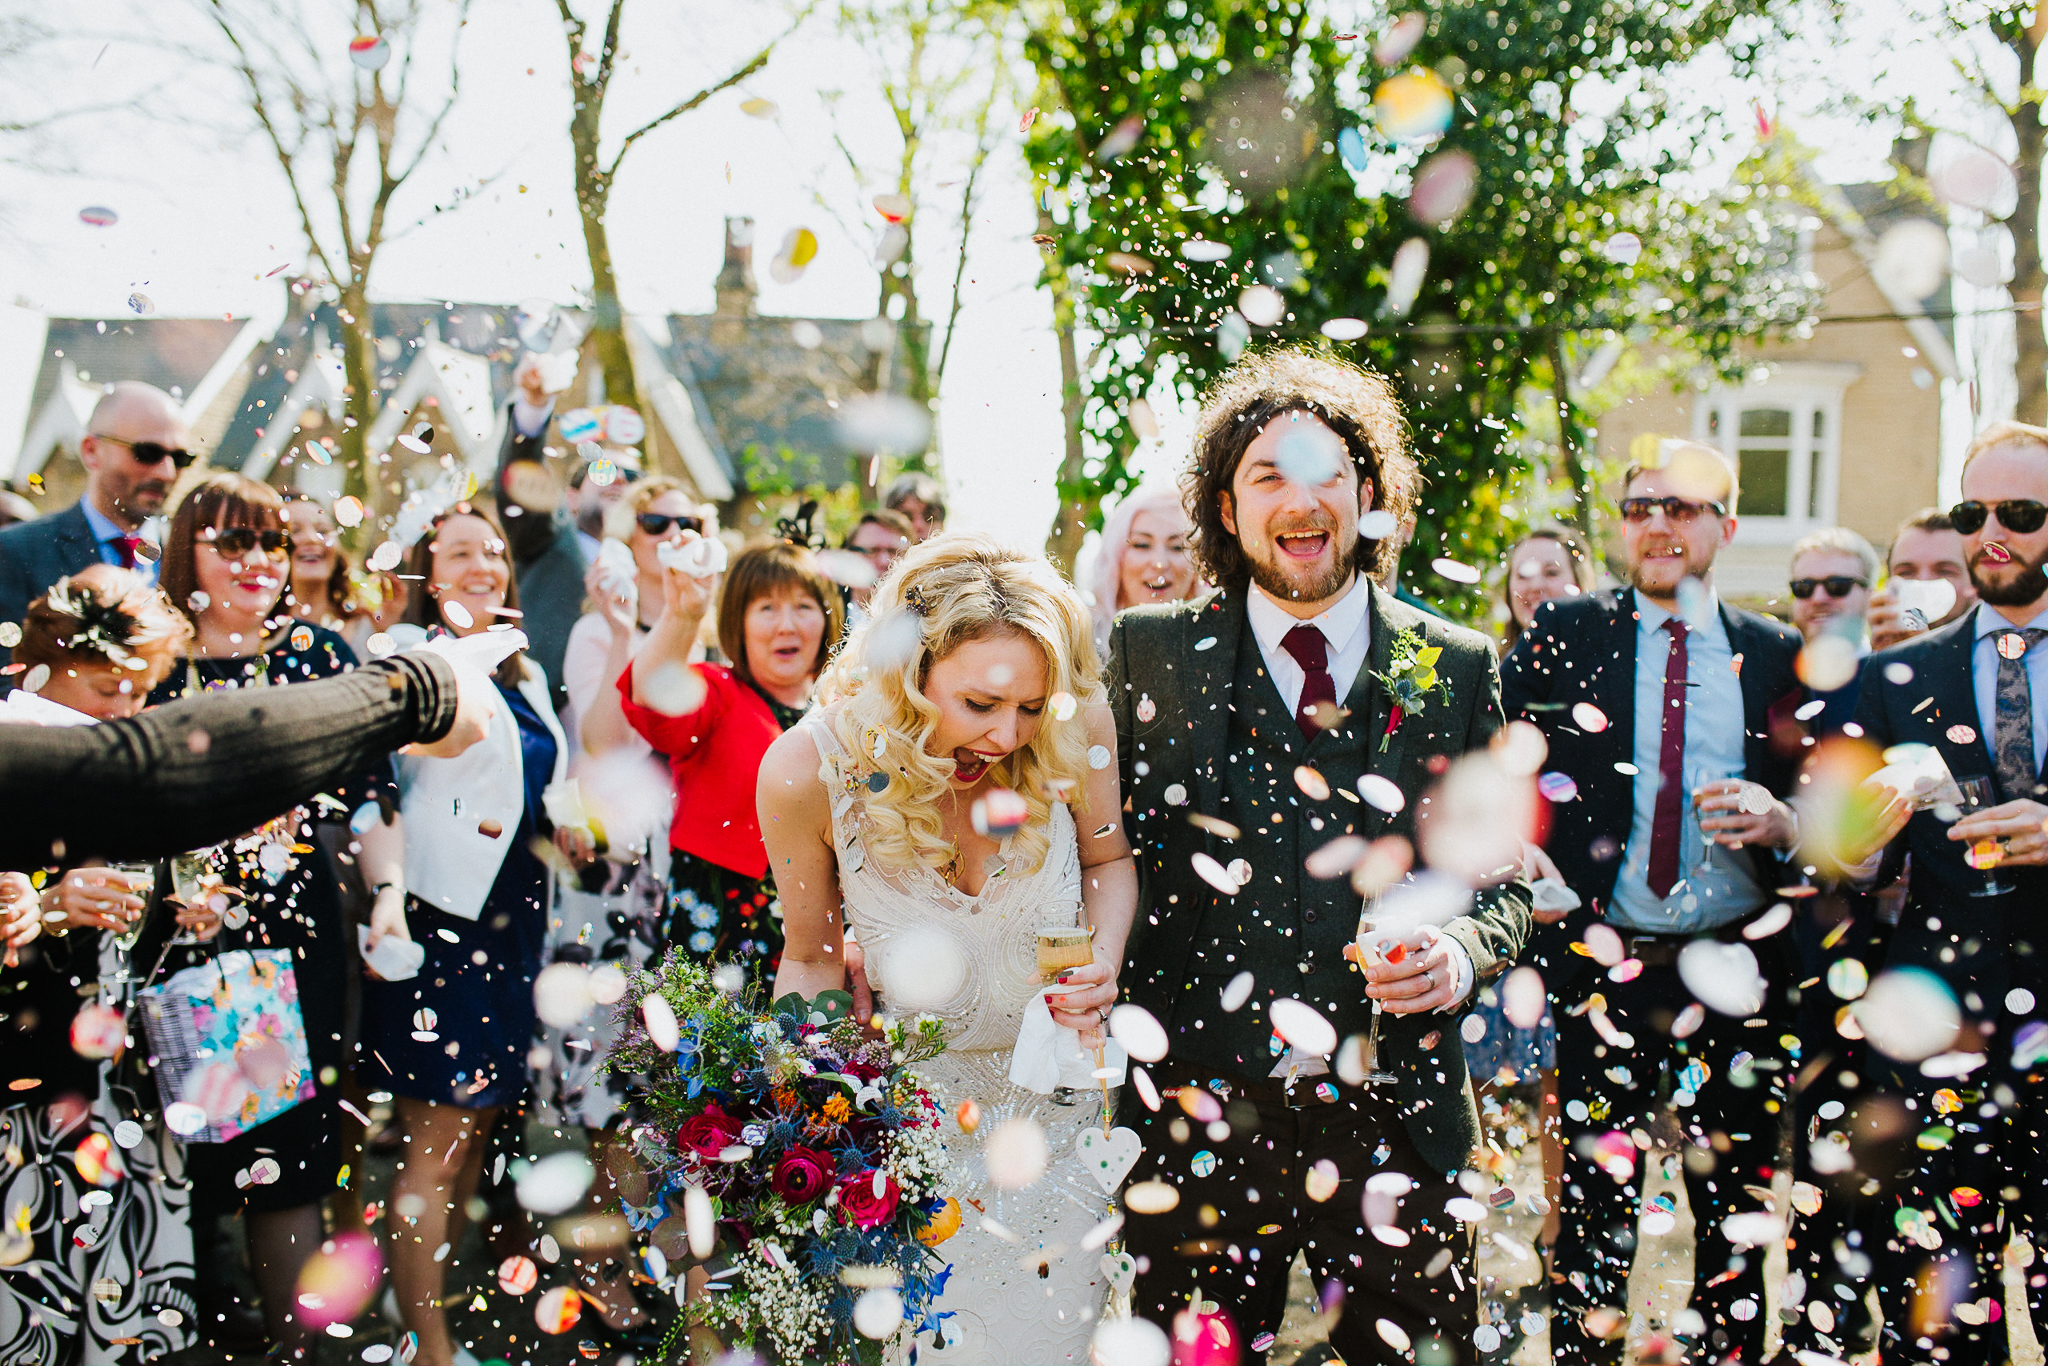 A Music Inspired Urban Wedding In The Heart Of Sheffield